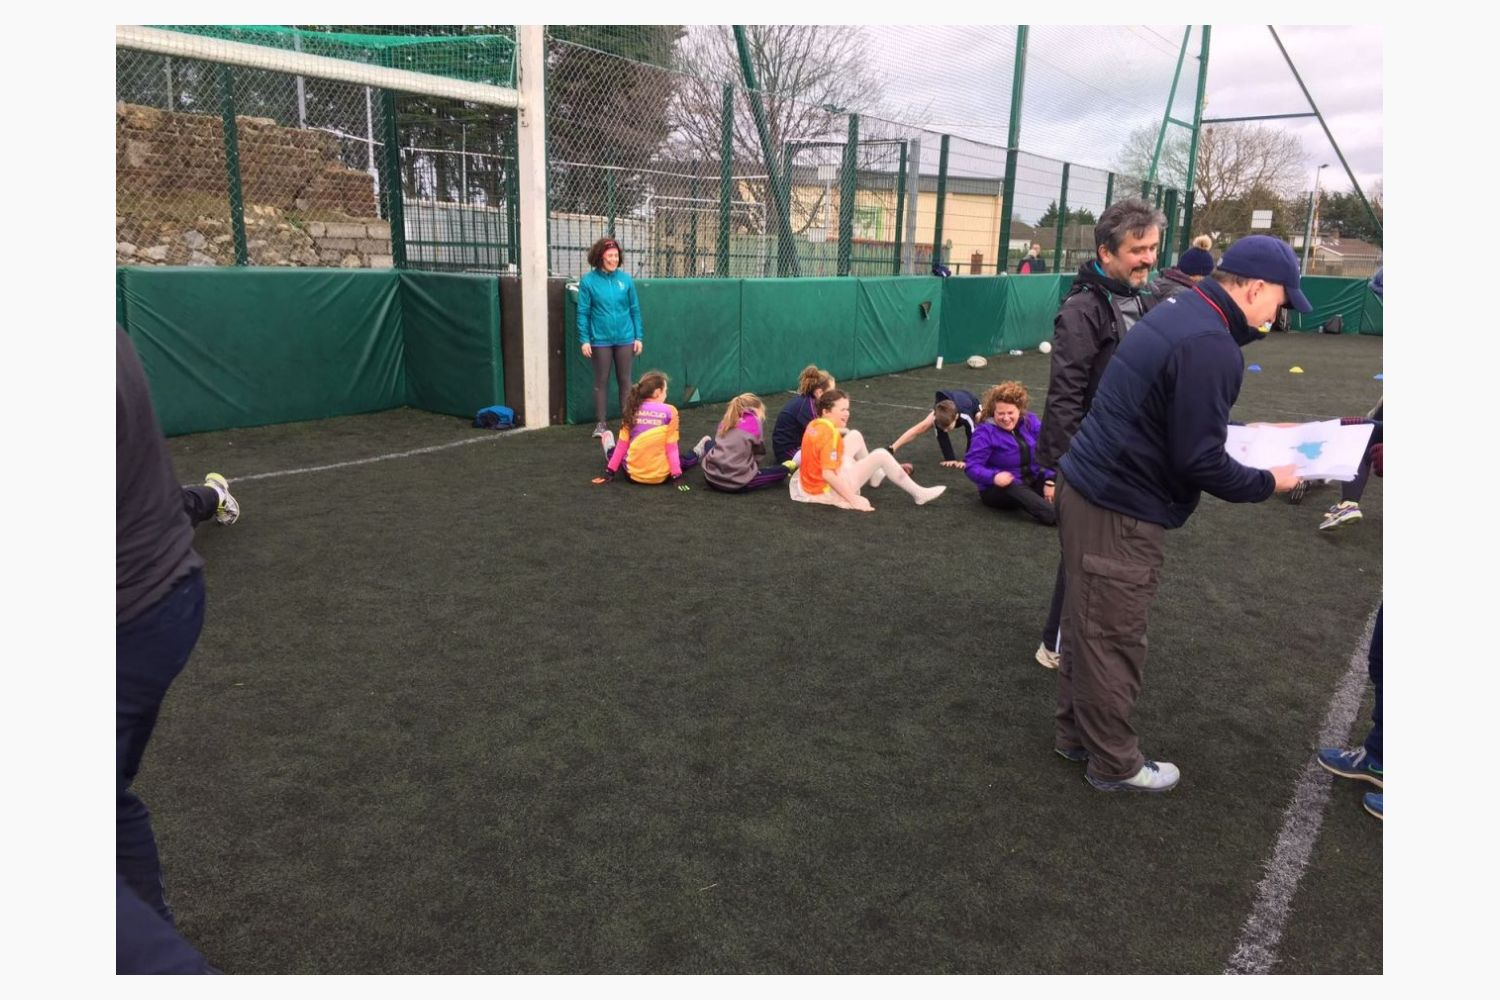 Sport 4 All Inclusion Activity, 1st Training Session Sunday 28th Jan 2018 in The Paddock